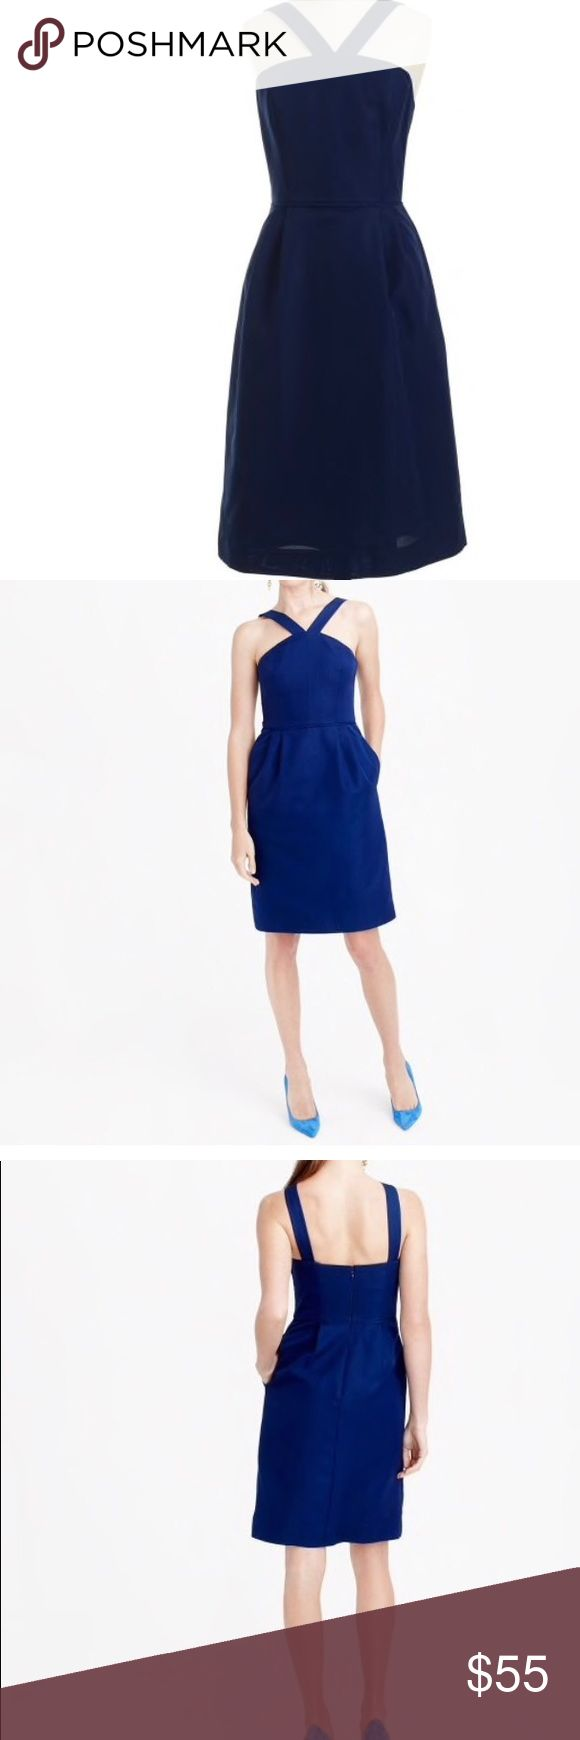 """J. Crew Lexie dress in classic faille A-line silhouette. Interior boning for added support. Falls above knee, 38 3/4"""" from high point of shoulder   Classic faille has a subtle sheen and a fluid structure that tailors and drapes (and photographs) beautifully. With a timeless silhouette that easily dresses up or down, this dress is a no-brainer for cocktail parties and gallery openings alike—Discreet pockets keep little extras like lipstick close at hand.  Cotton/viscose. Back zip. On-seam…"""